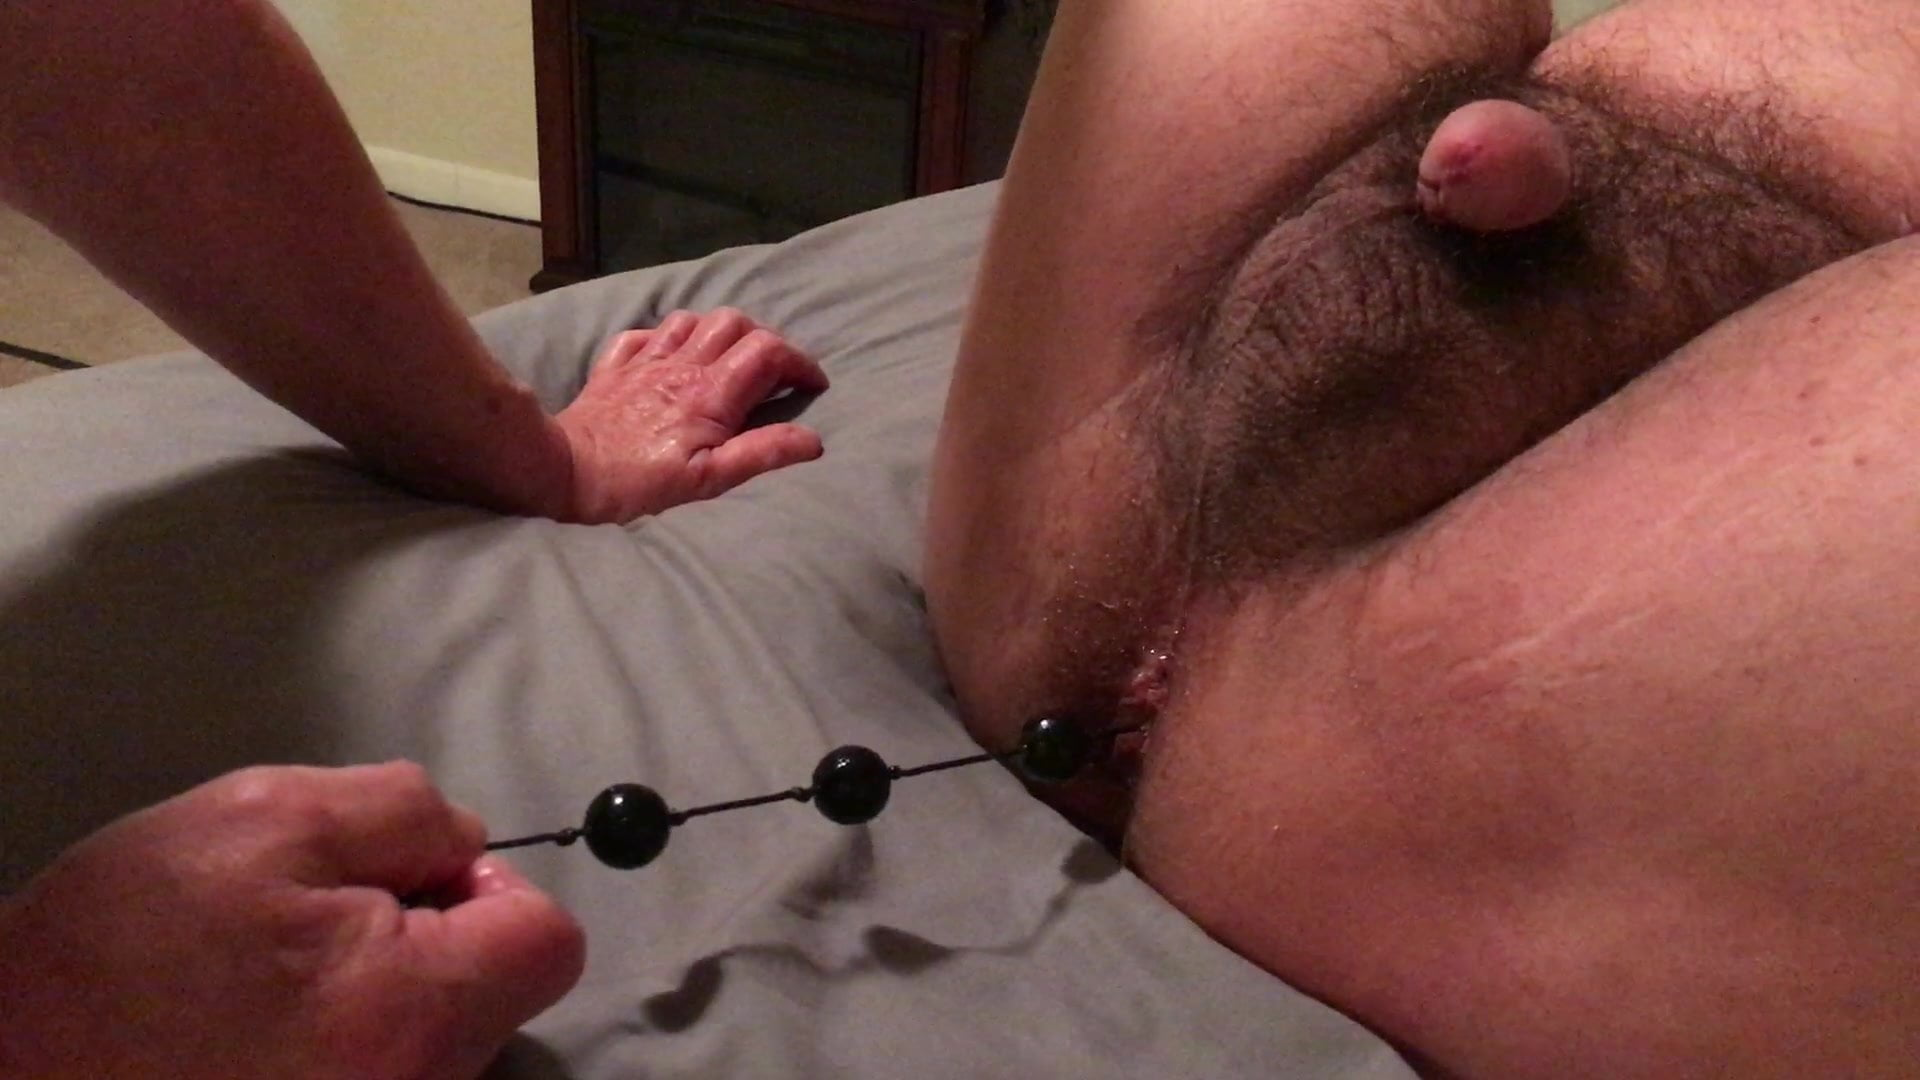 Watch anal beads porn